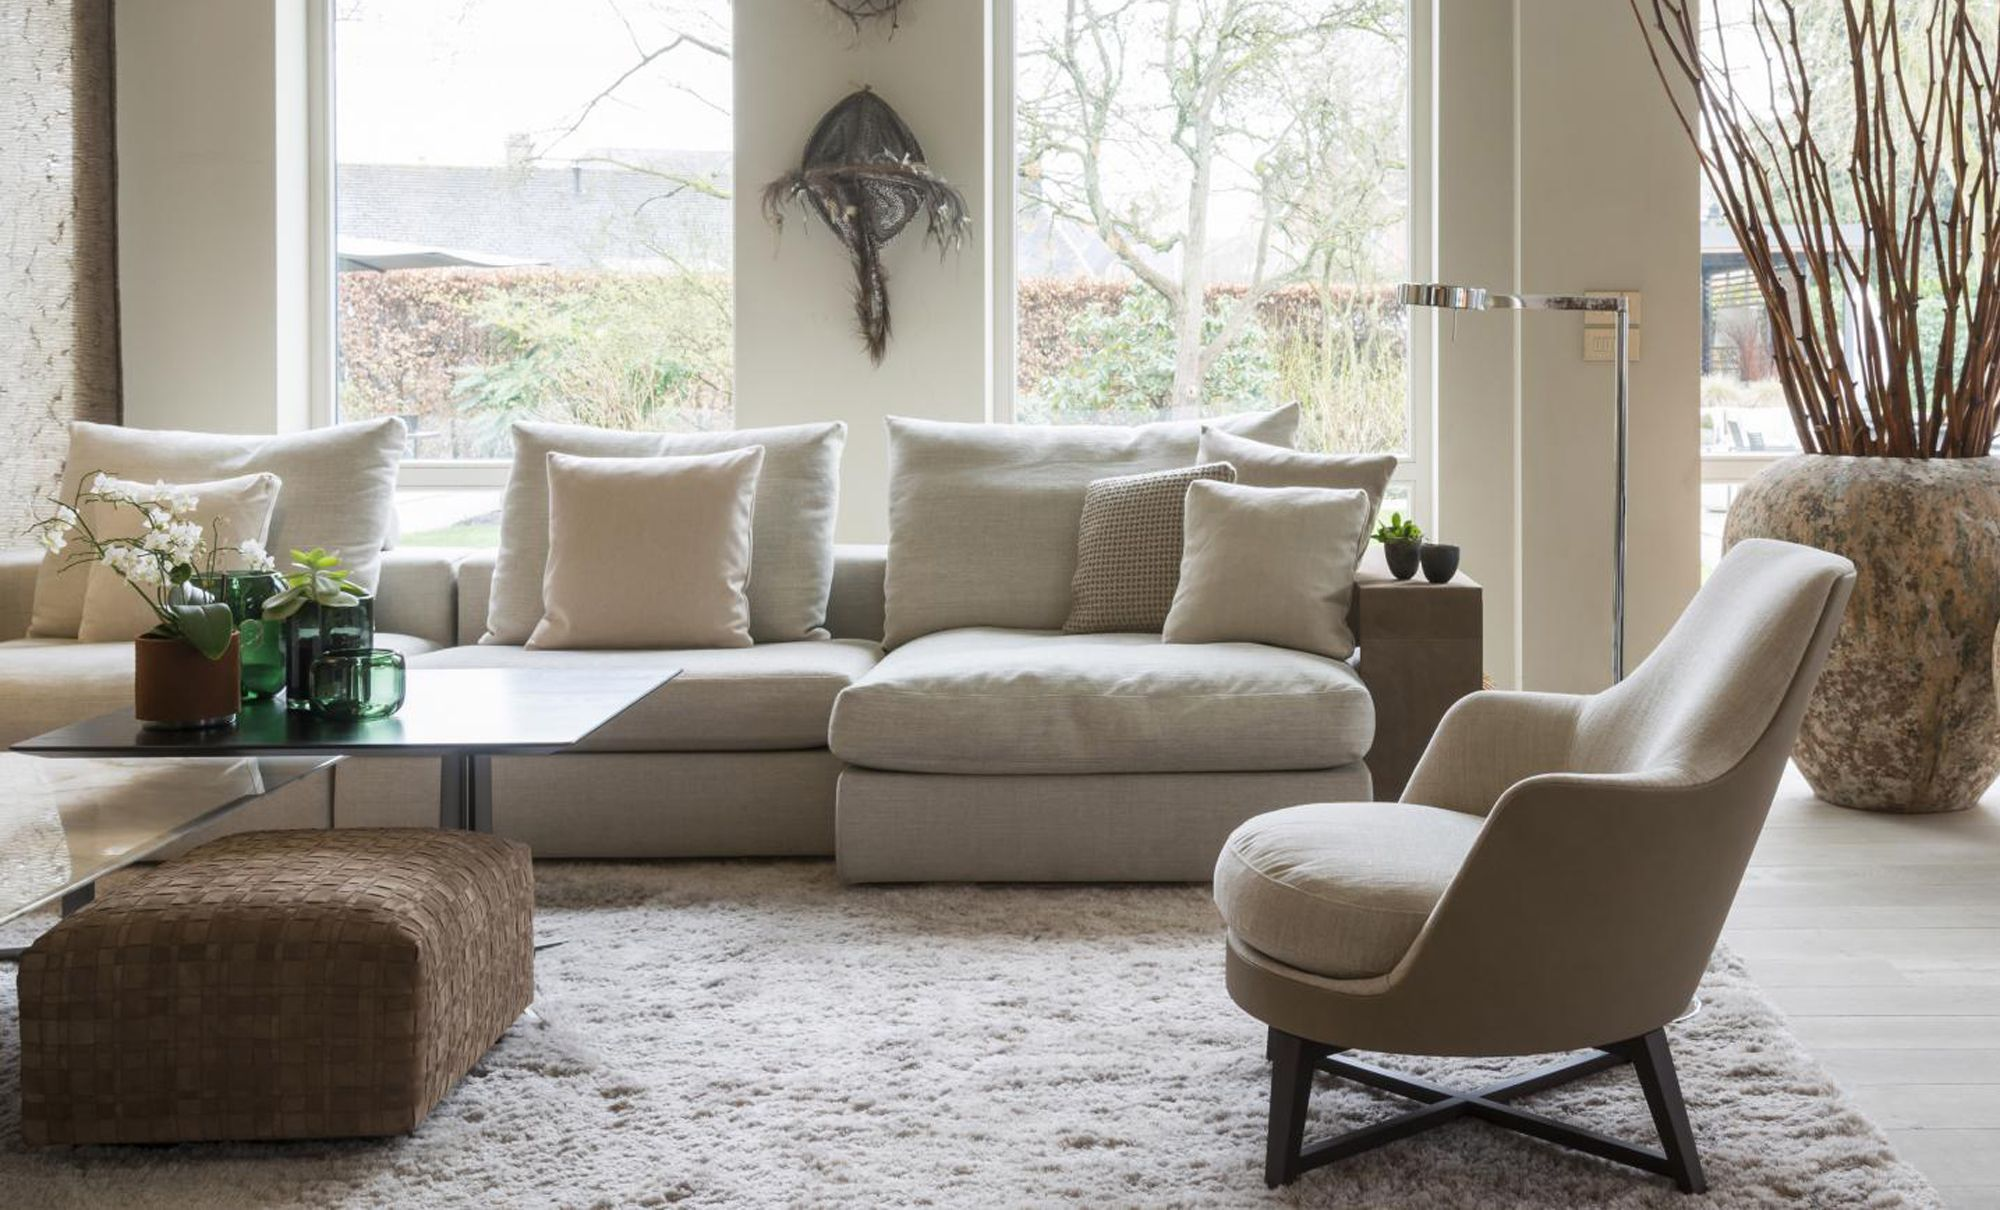 Flexform Groundpiece Sofa With The Guscio Armchair And Bangkok Ottoman,  Available From Fanuli Sydney And · CottageHouse IdeasLiving Rooms InteriorBankLounge ...